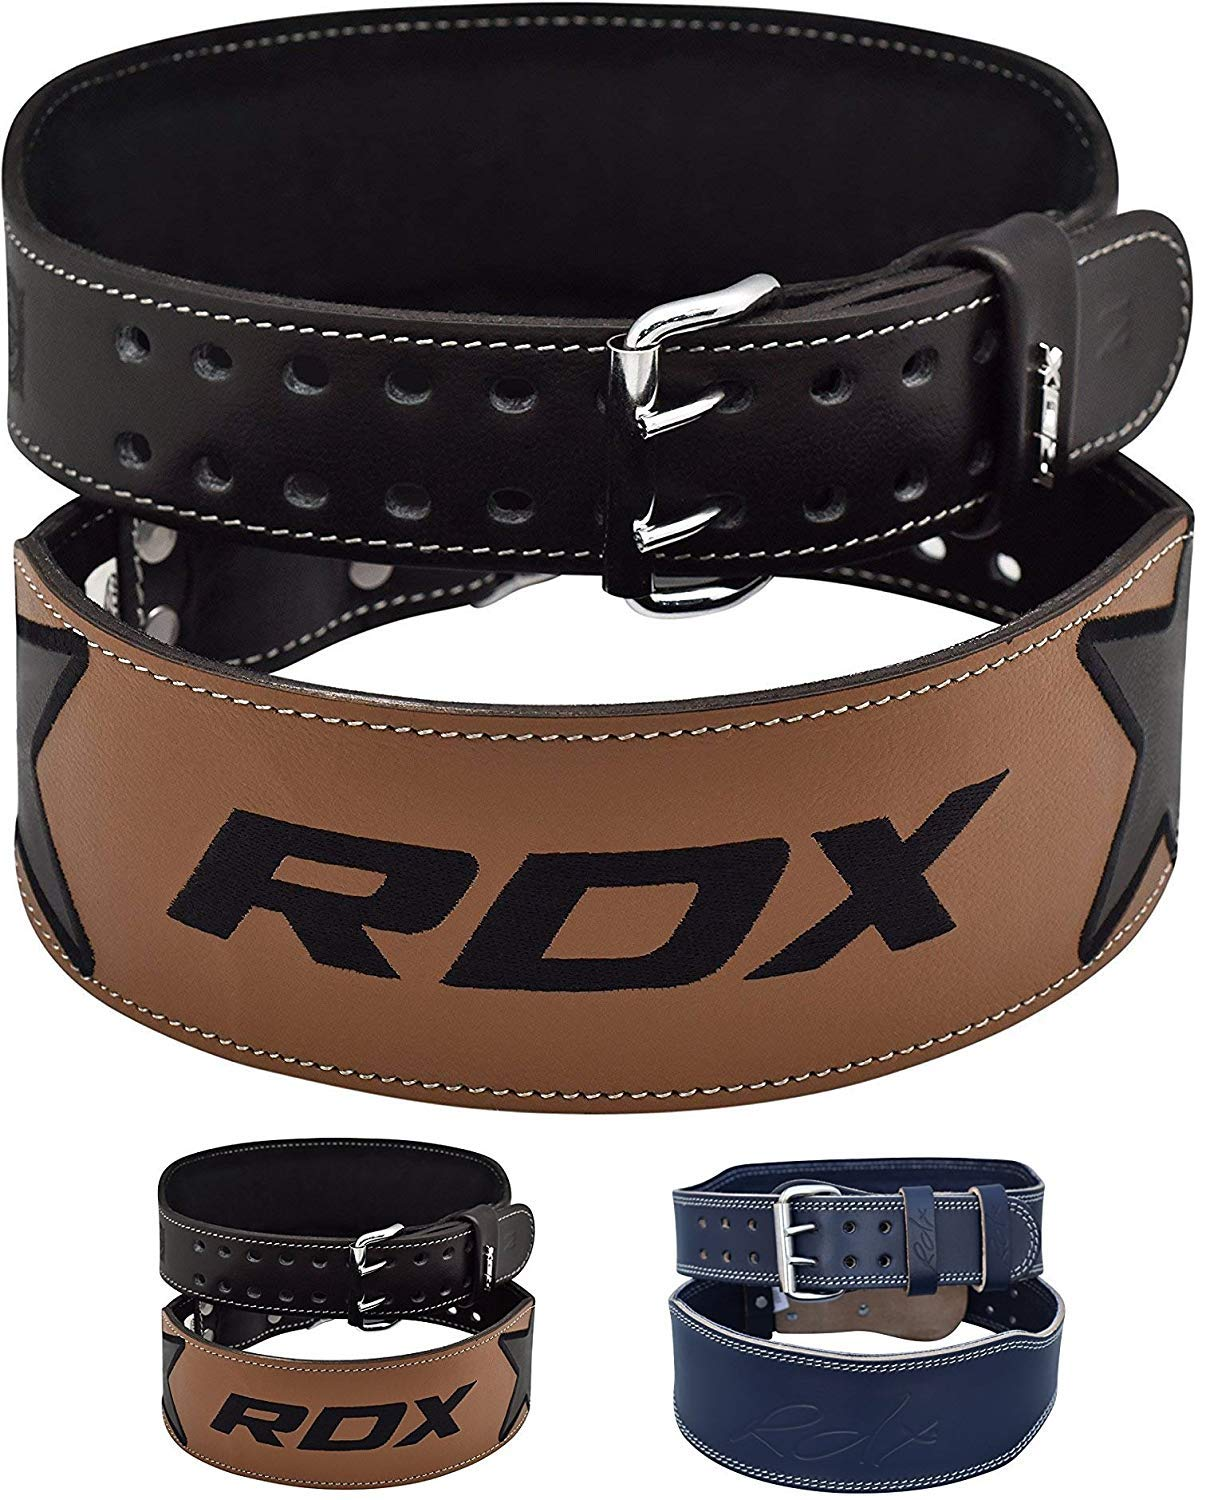 RDX Weight Lifting Gym Belt Cow Hide Leather 4'' Back Training Support Fitness Exercise Bodybuilding